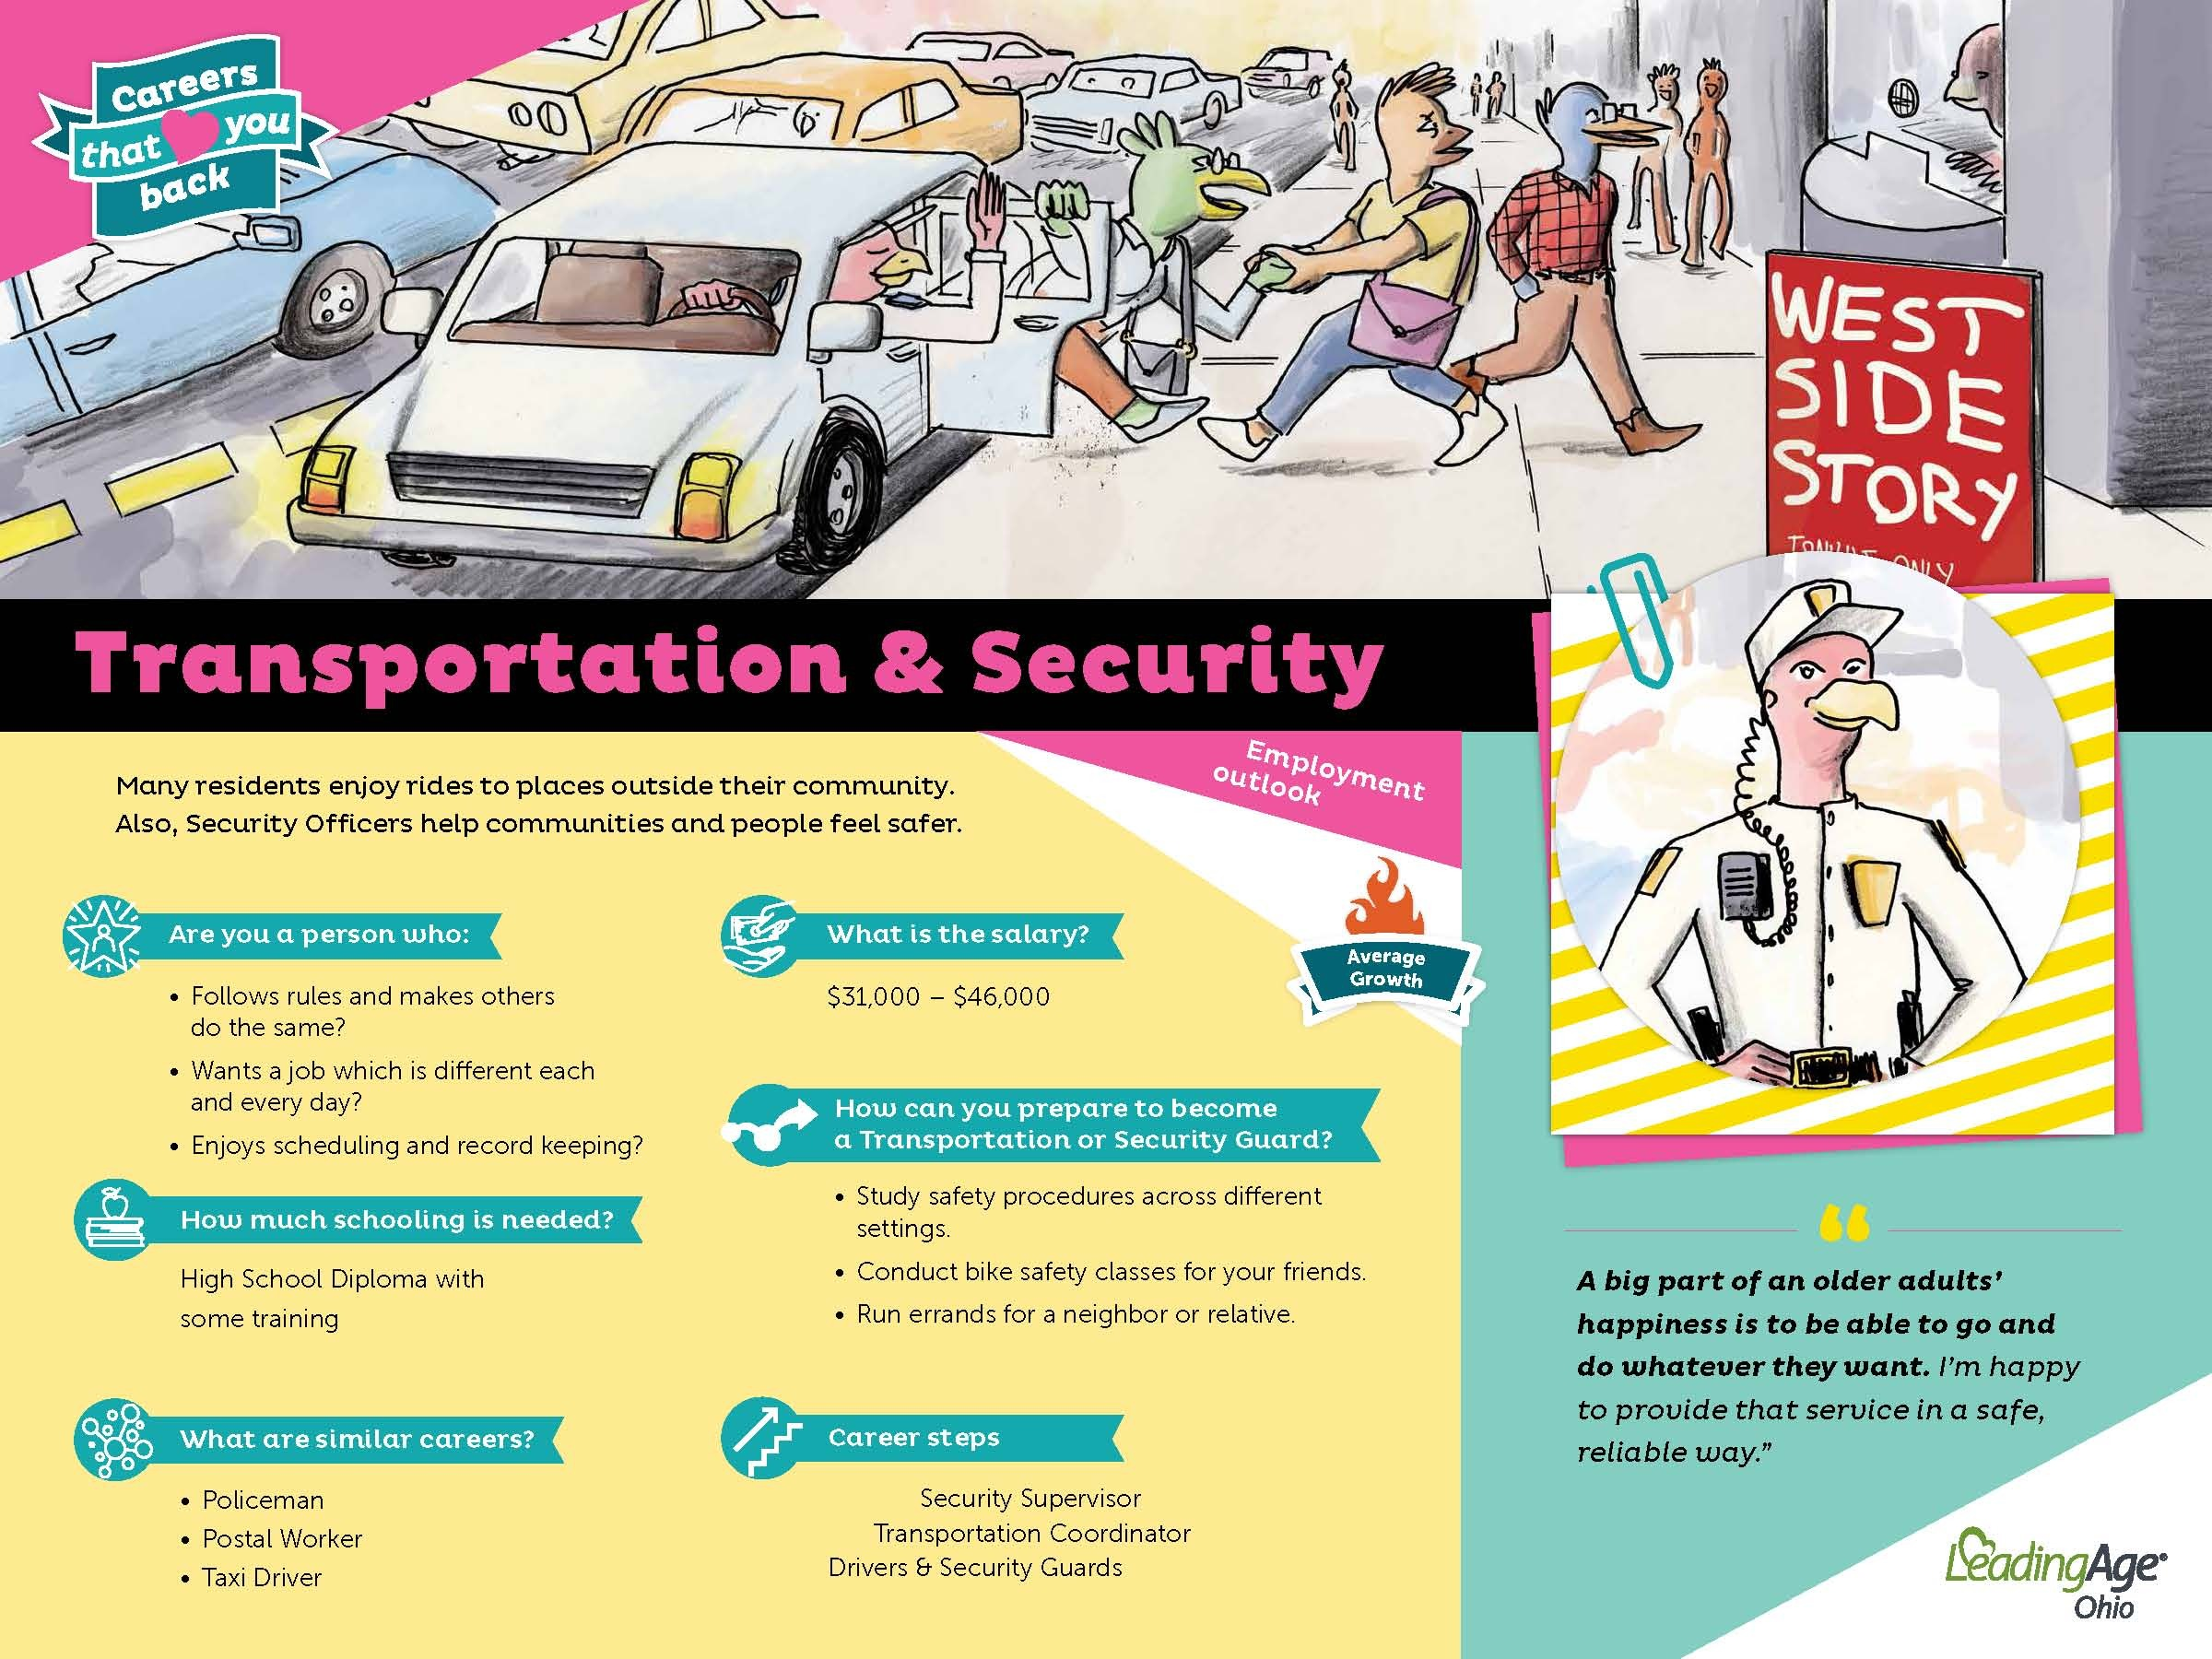 Transportation & Security